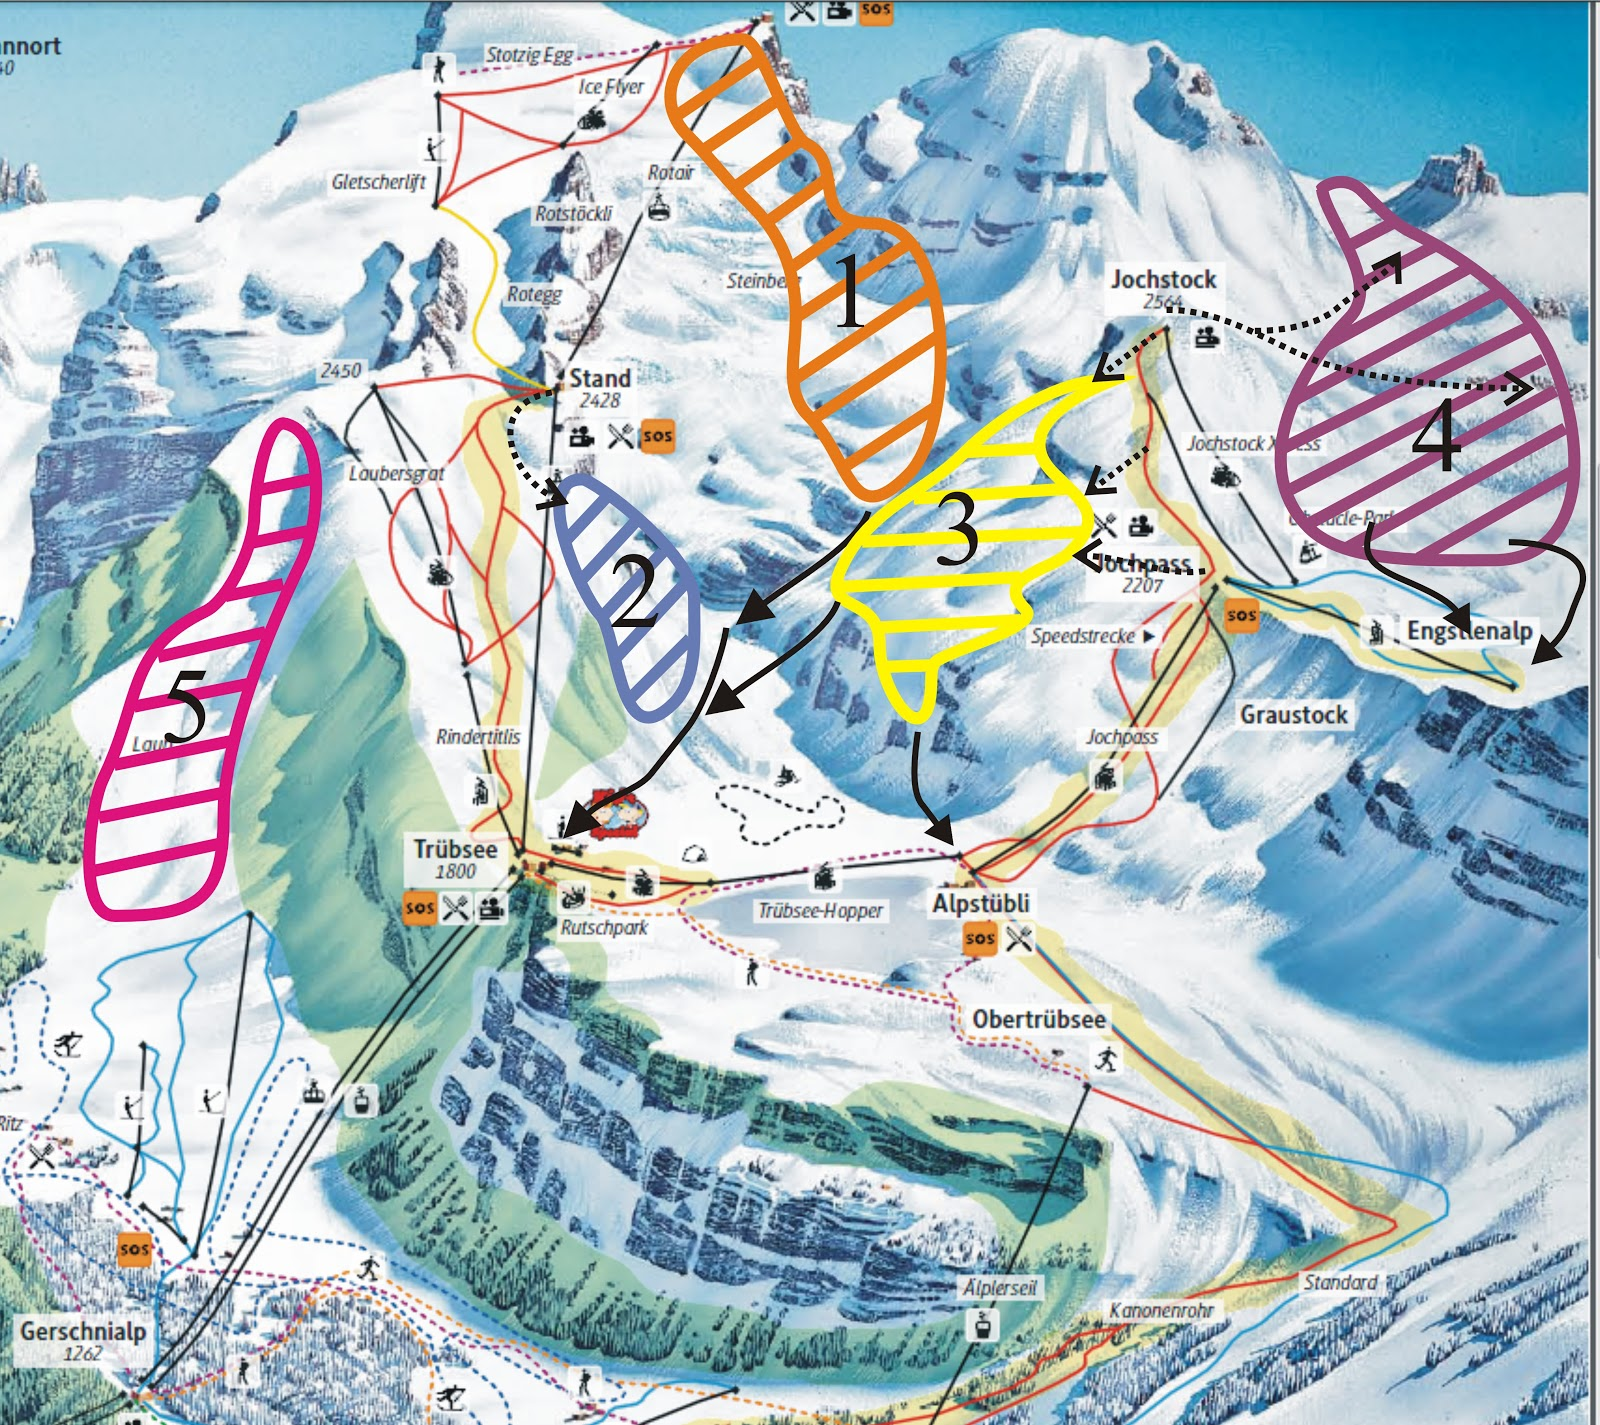 Franks ski resort reviews and other stuff Engelberg